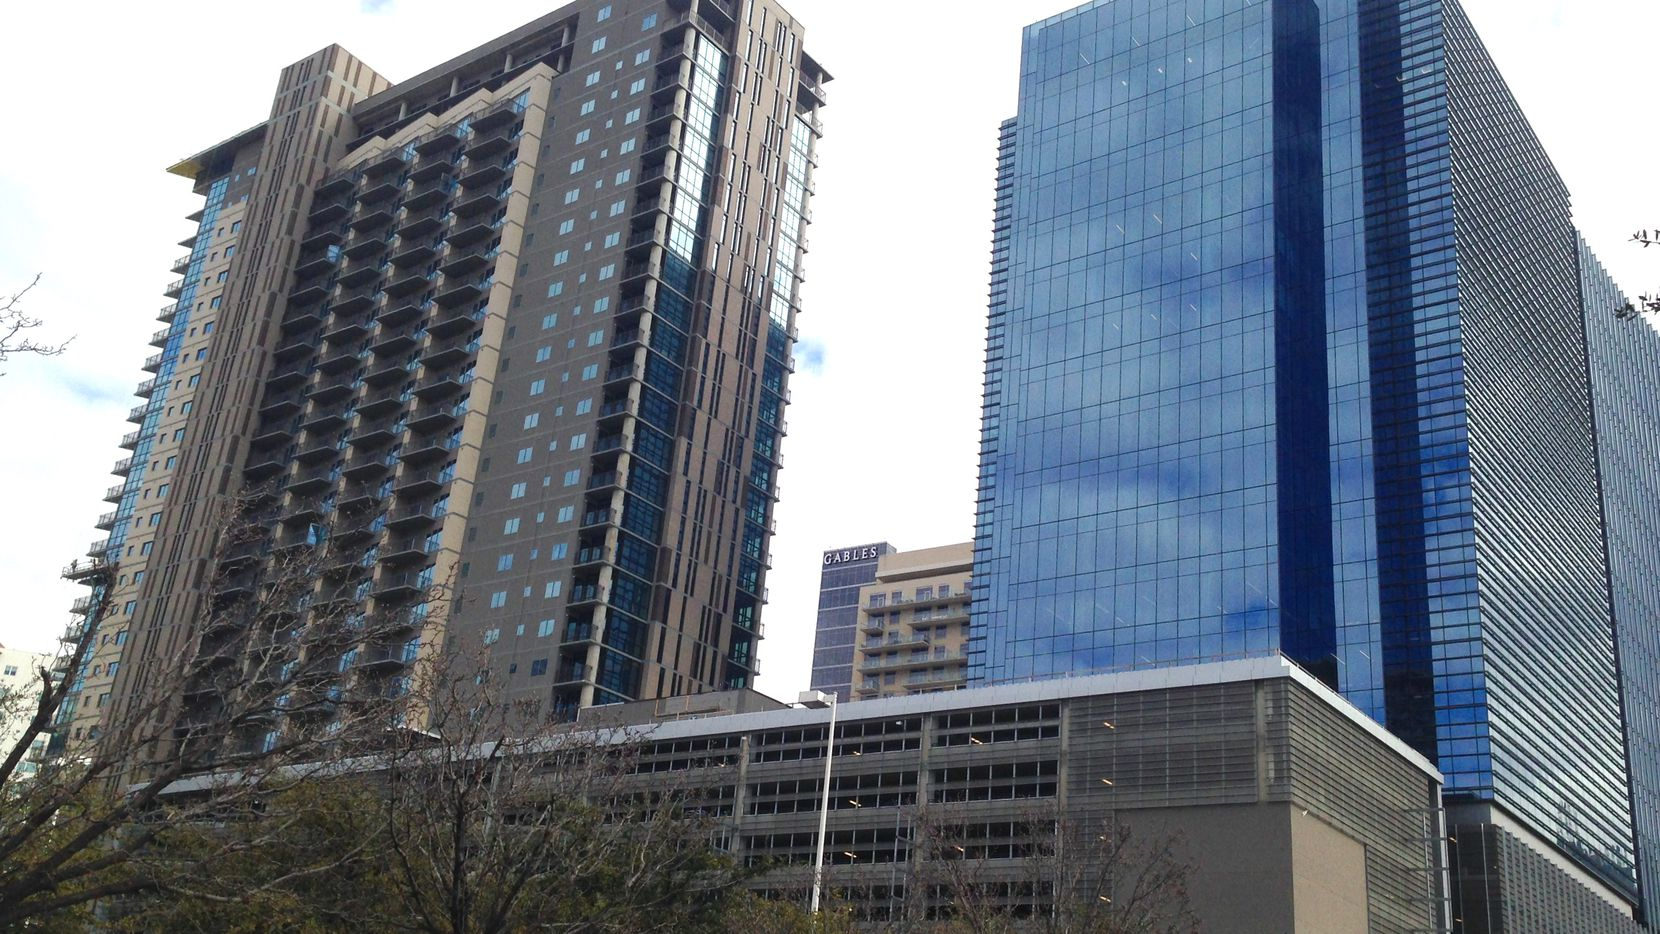 The Christopher tower (on the left) iis part of the Union development north of downtown.